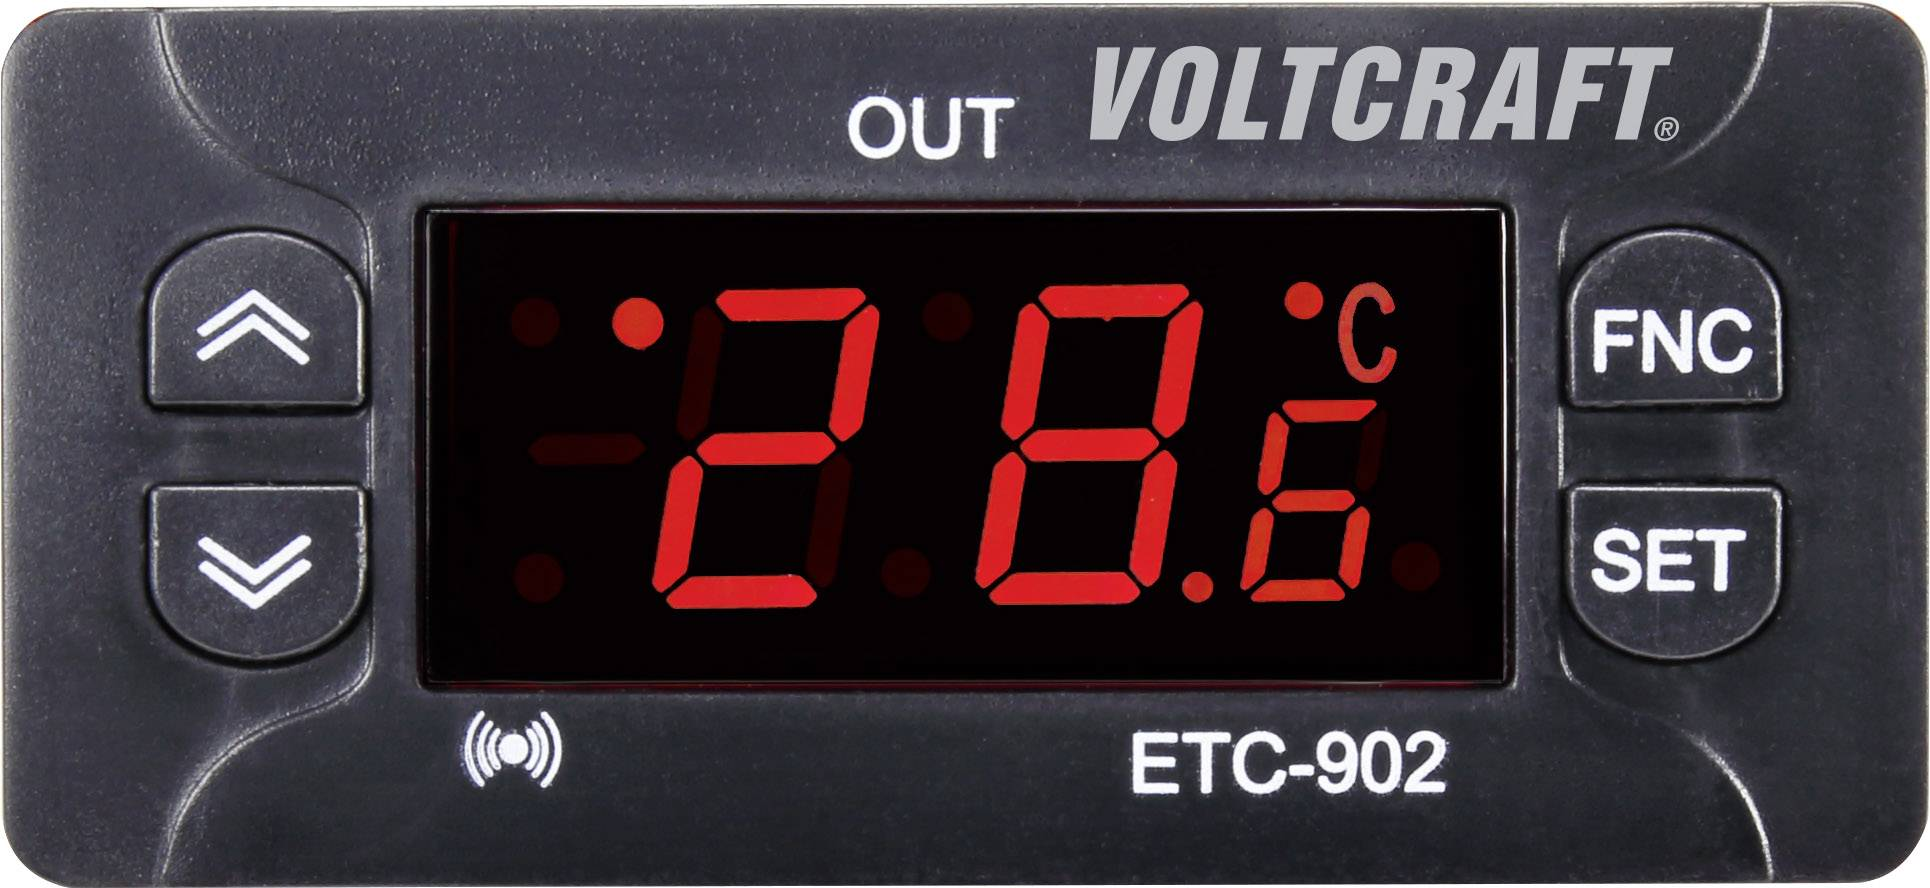 Termostat VOLTCRAFT ETC-902, druh čidla NTC, PTC, -30 do 50 °C